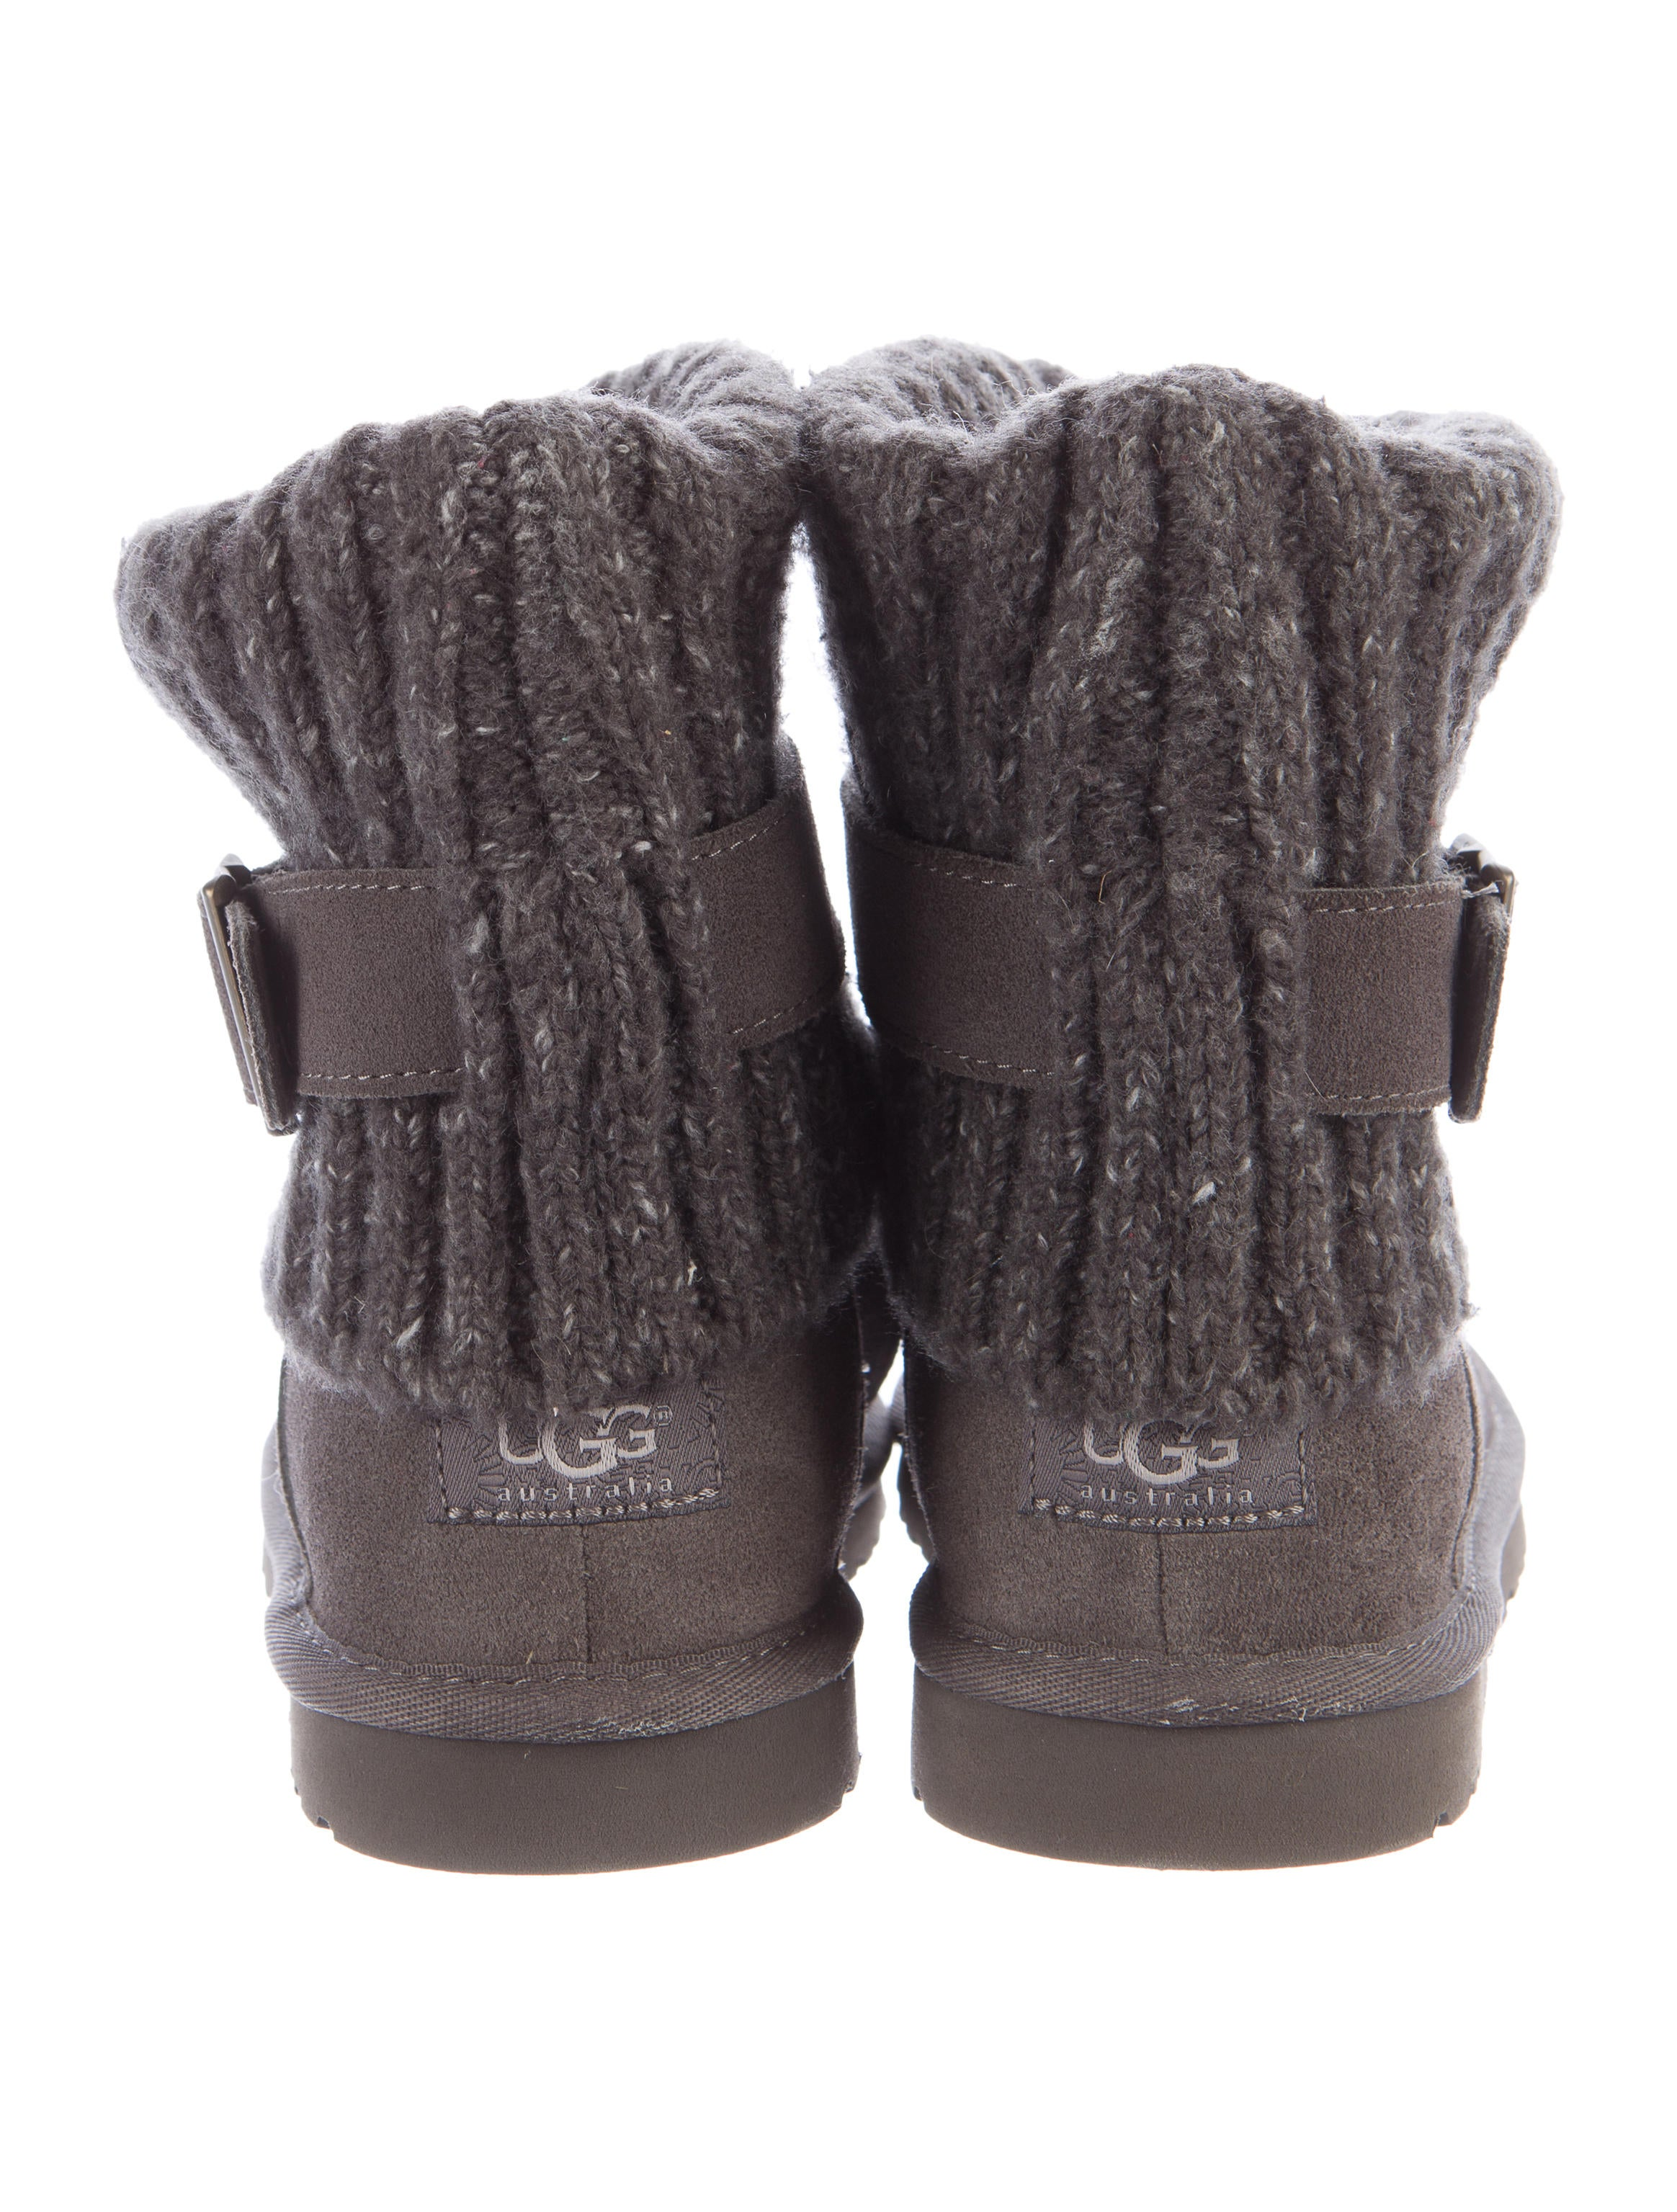 Ankle Ugg Boots With Knitted Ville Du Muy